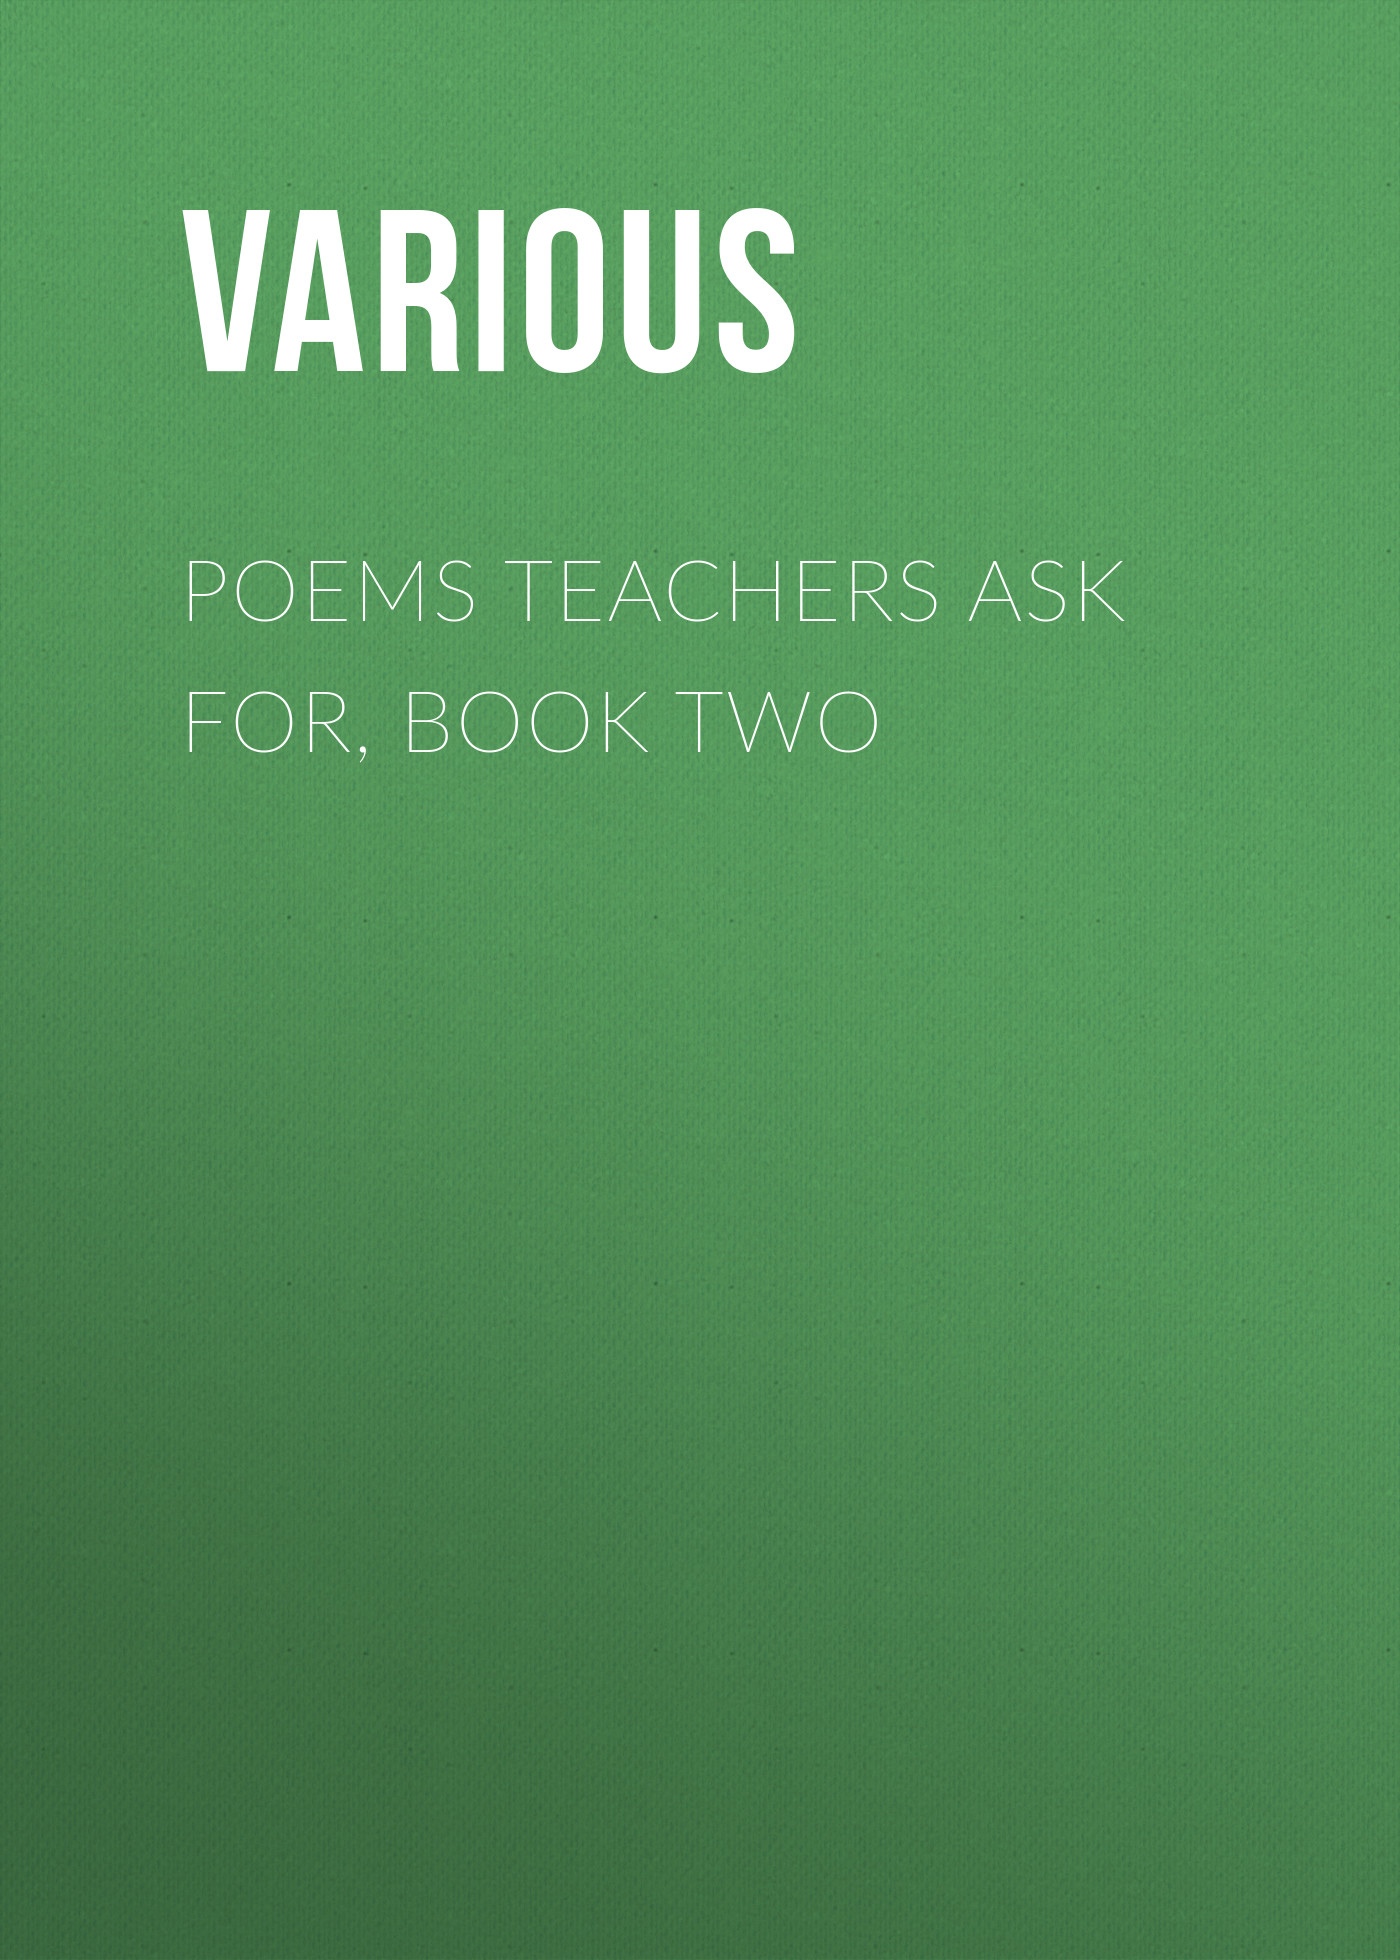 Various Poems Teachers Ask For, Book Two prison pit book two